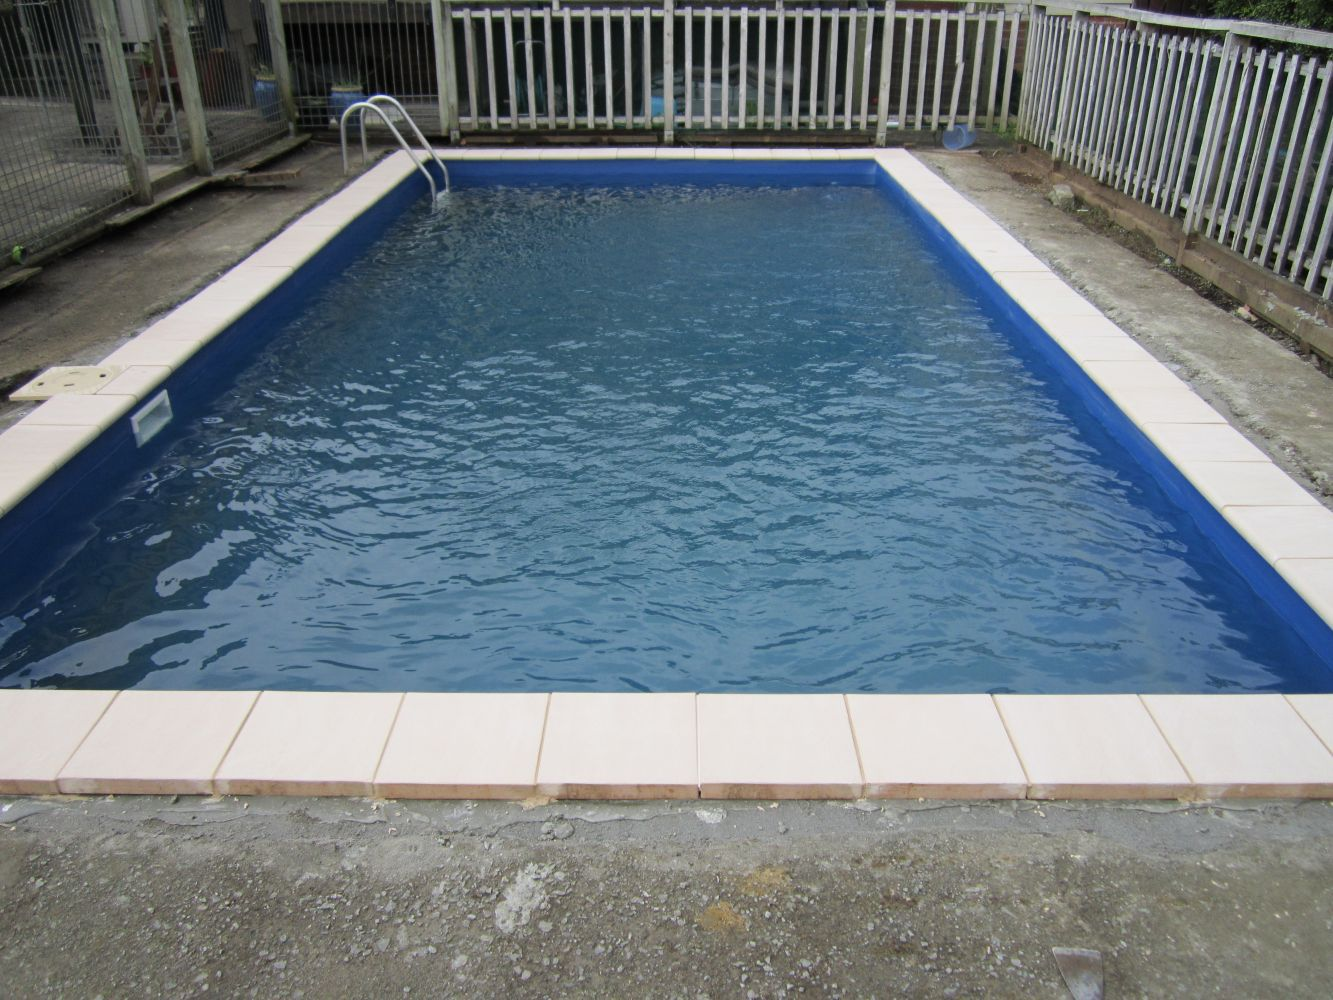 completed projects of  Liner Pool Installations Limited